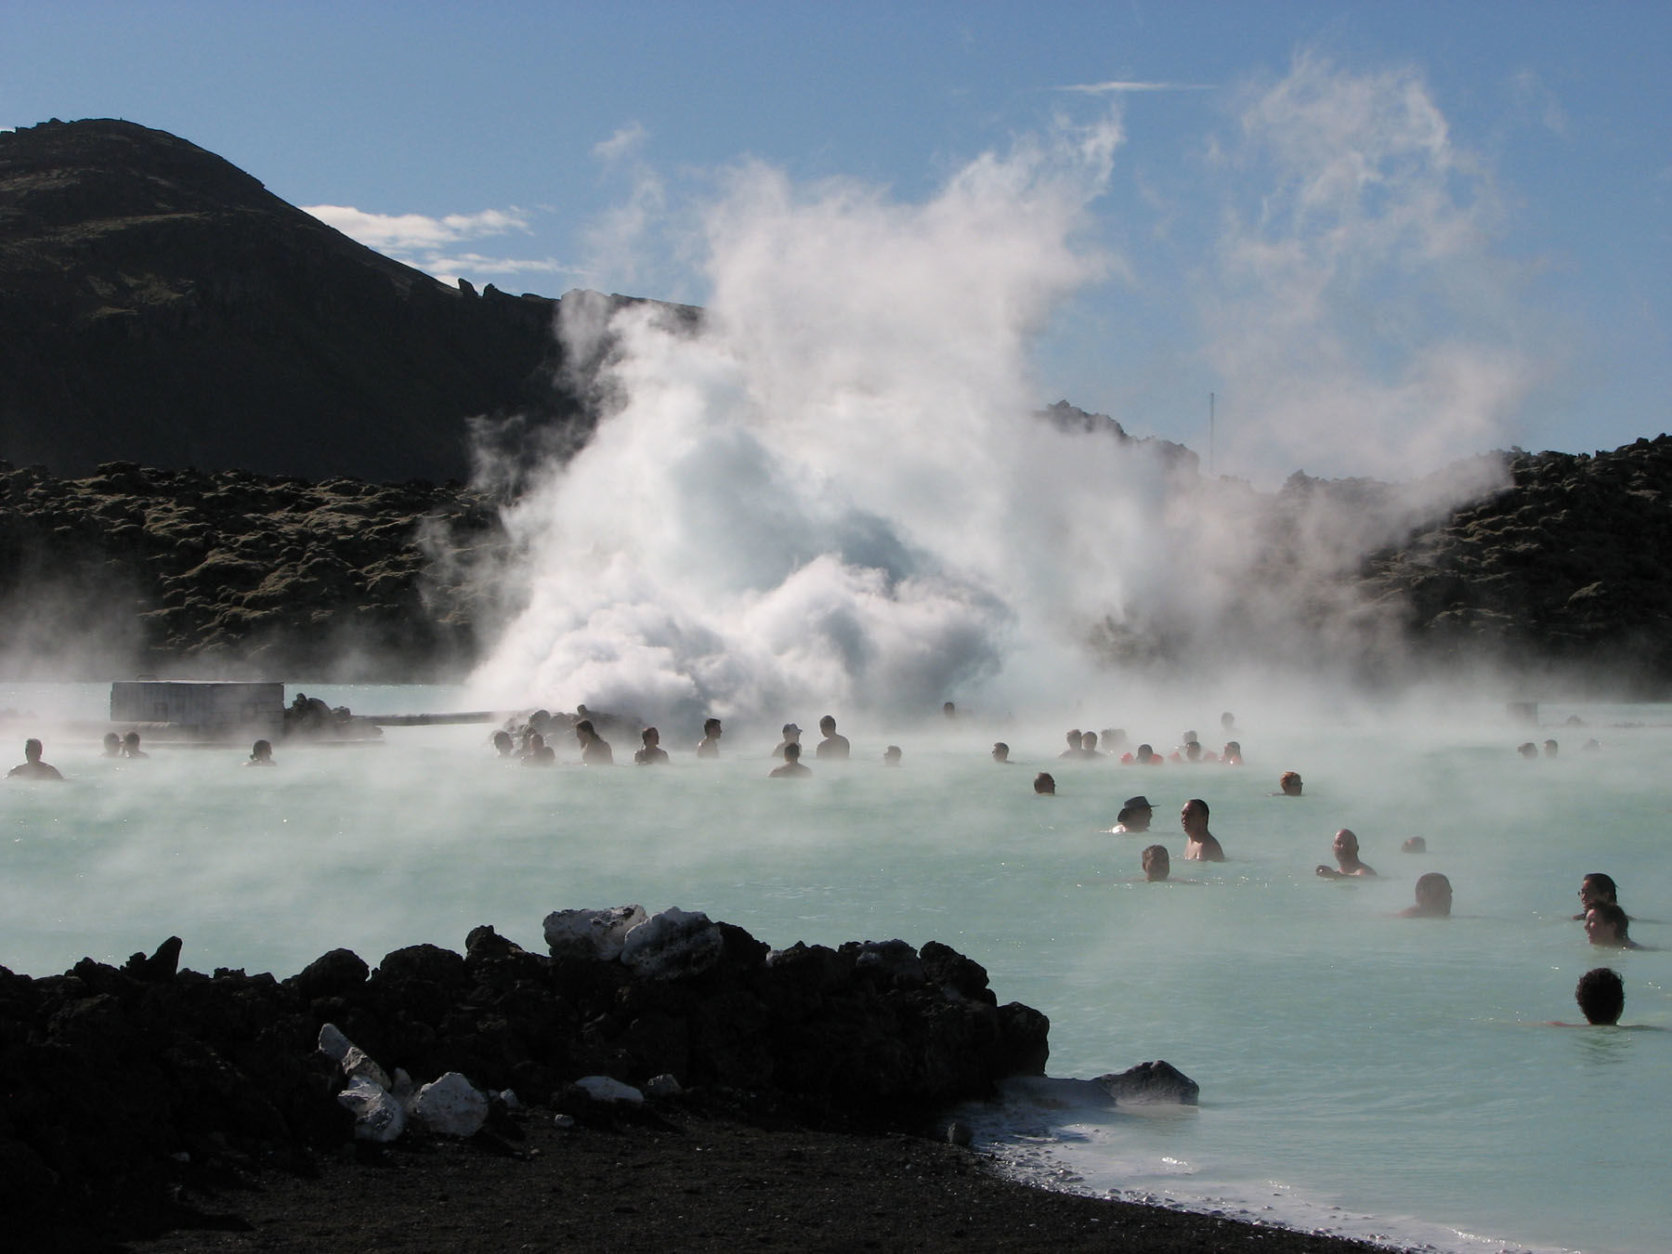 A trip to Iceland wouldn't be complete without a dip in the Blue Lagoon, a man-made geothermal pool on Reykjanes peninsula.  (AP Photo/Tania Fuentez)